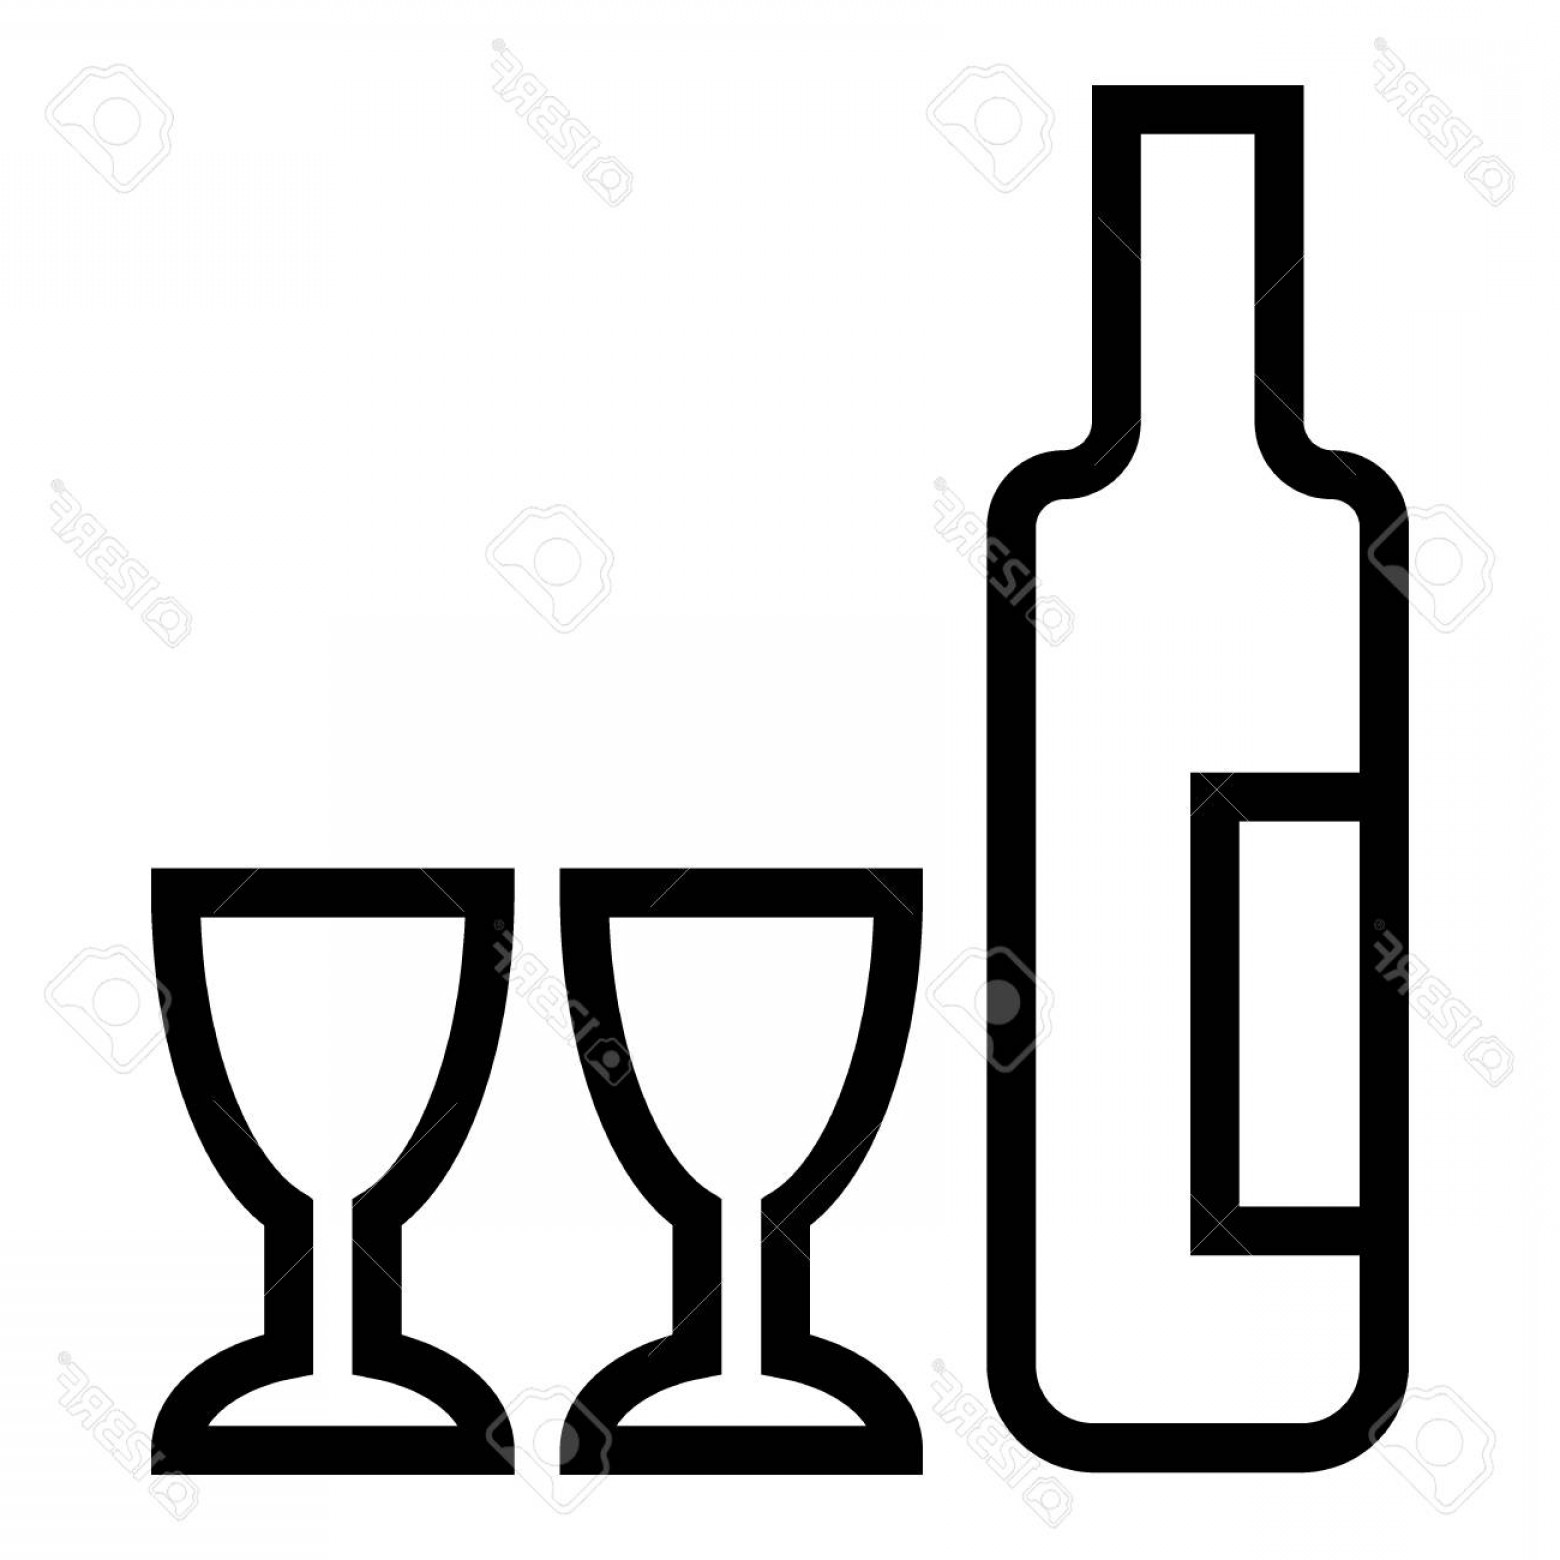 Alcohol Vector: Photostock Vector Wine And Two Glasses Line Icon Bottle Of Alcohol Vector Illustration Isolated On White Drink Outline